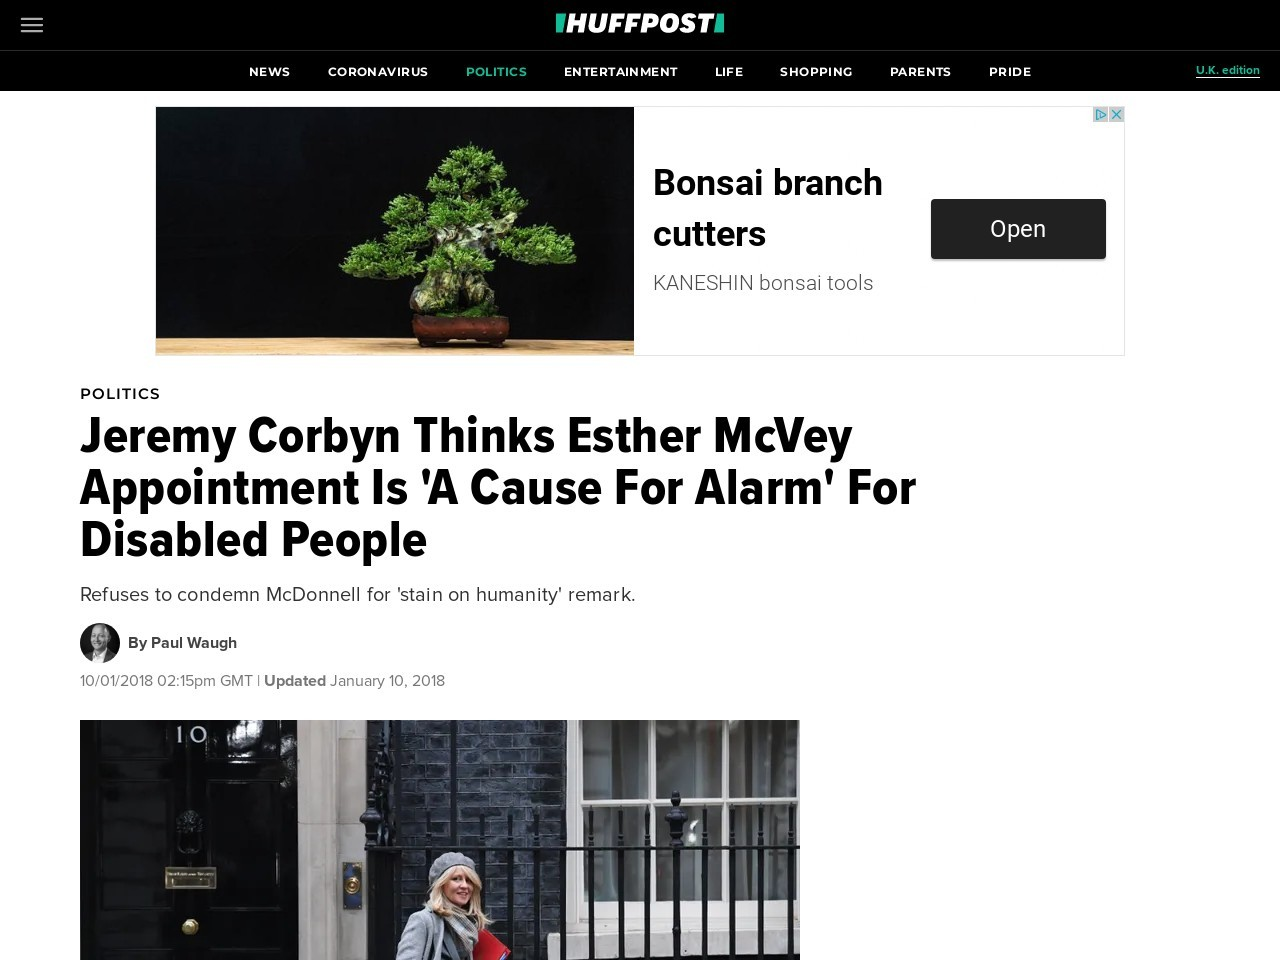 Jeremy Corbyn Thinks Esther McVey Appointment Is 'A Cause For Alarm' For Disabled People